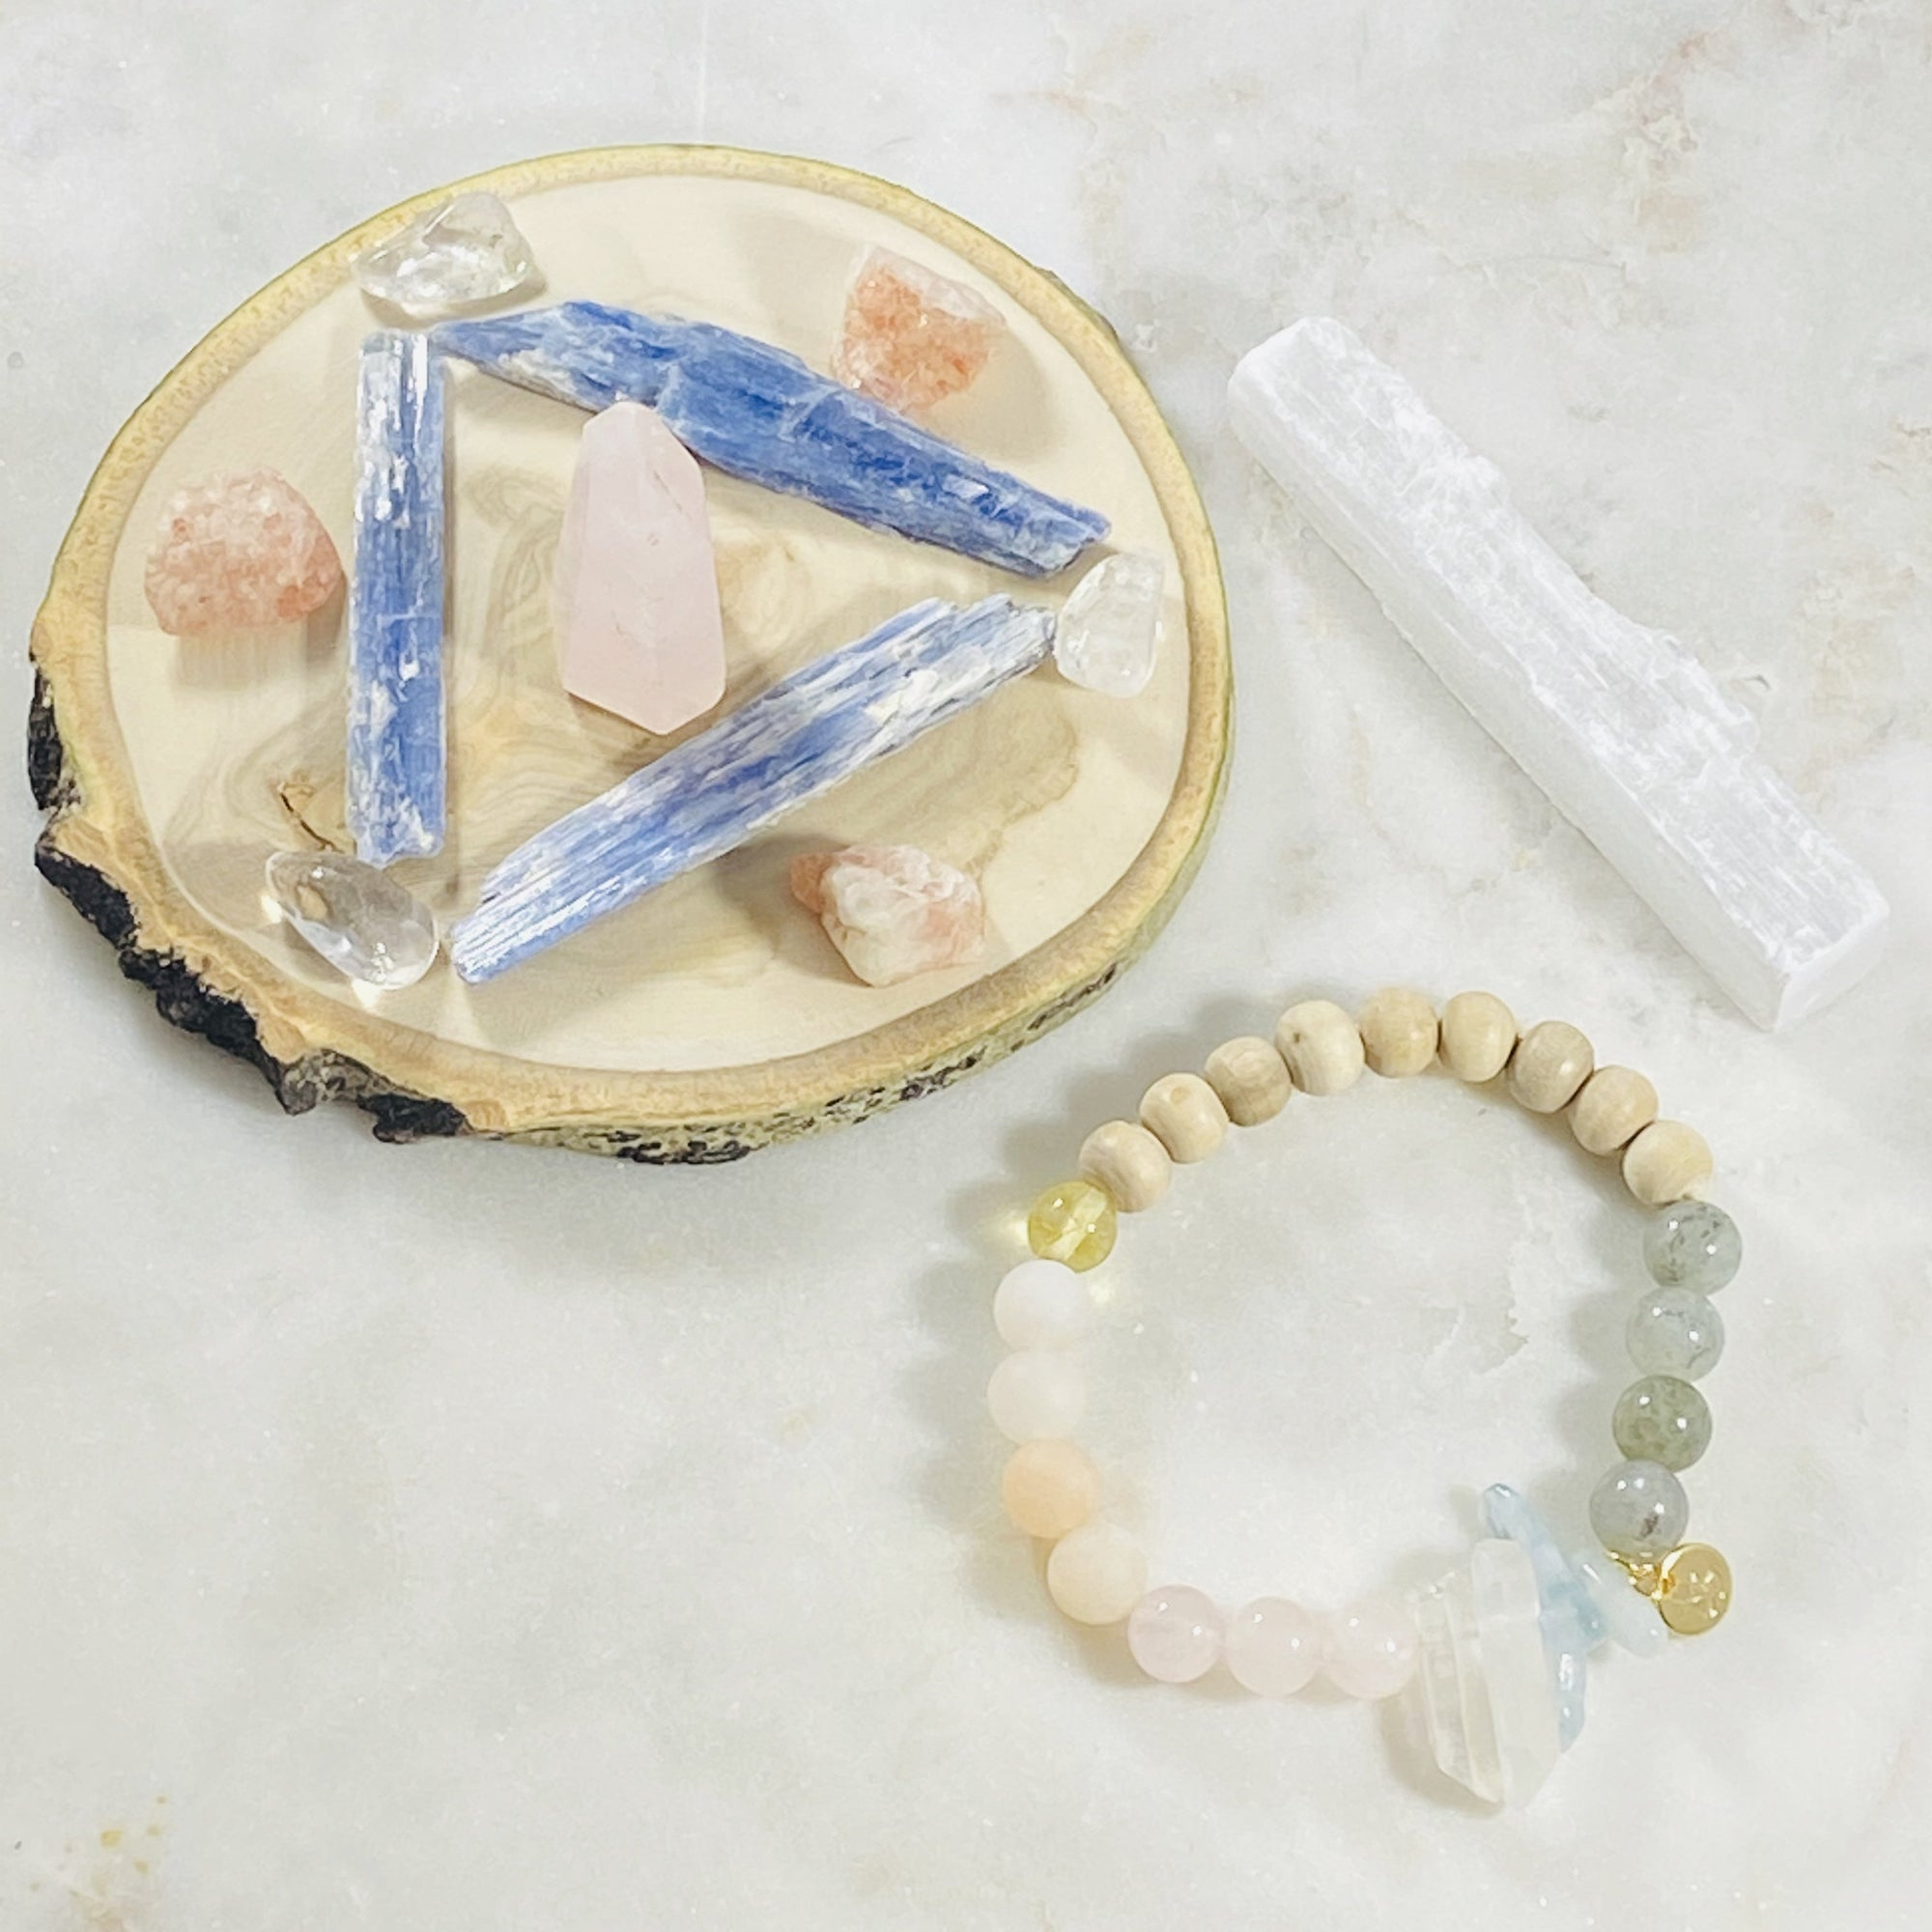 Healing crystal grid and handmade bracelet for healing the heart